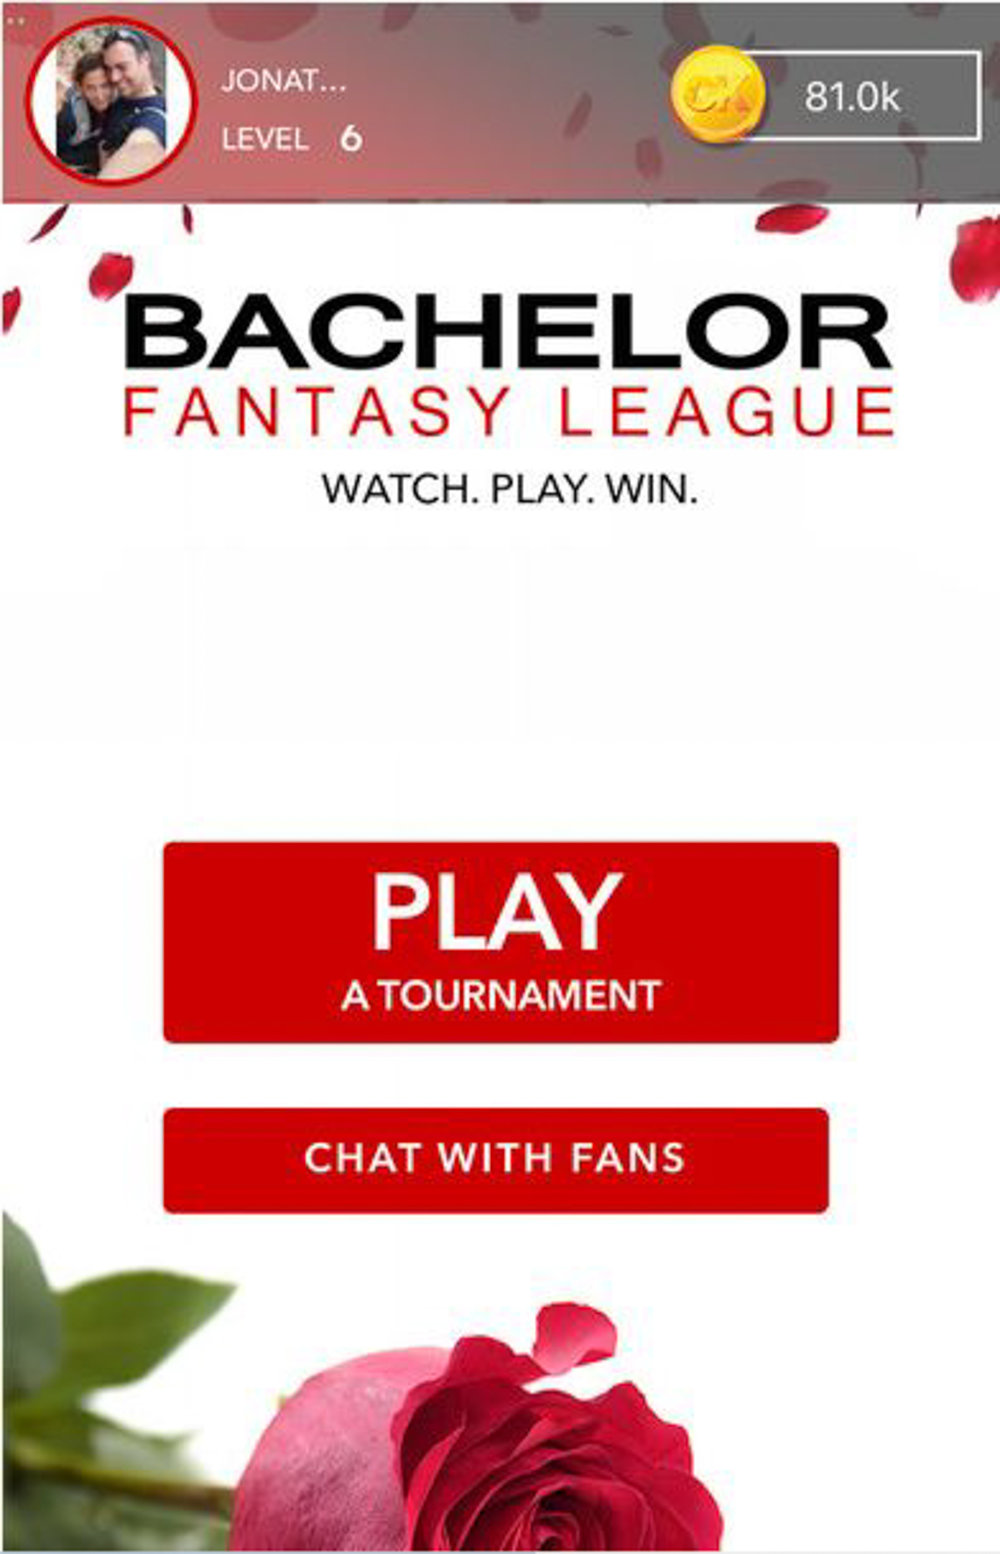 The Bachelor Fantasy League updates in real time, right along with the action in the episode, allowing you to keep track of your score while you watch the show. (Screenshot for Apple App Store)